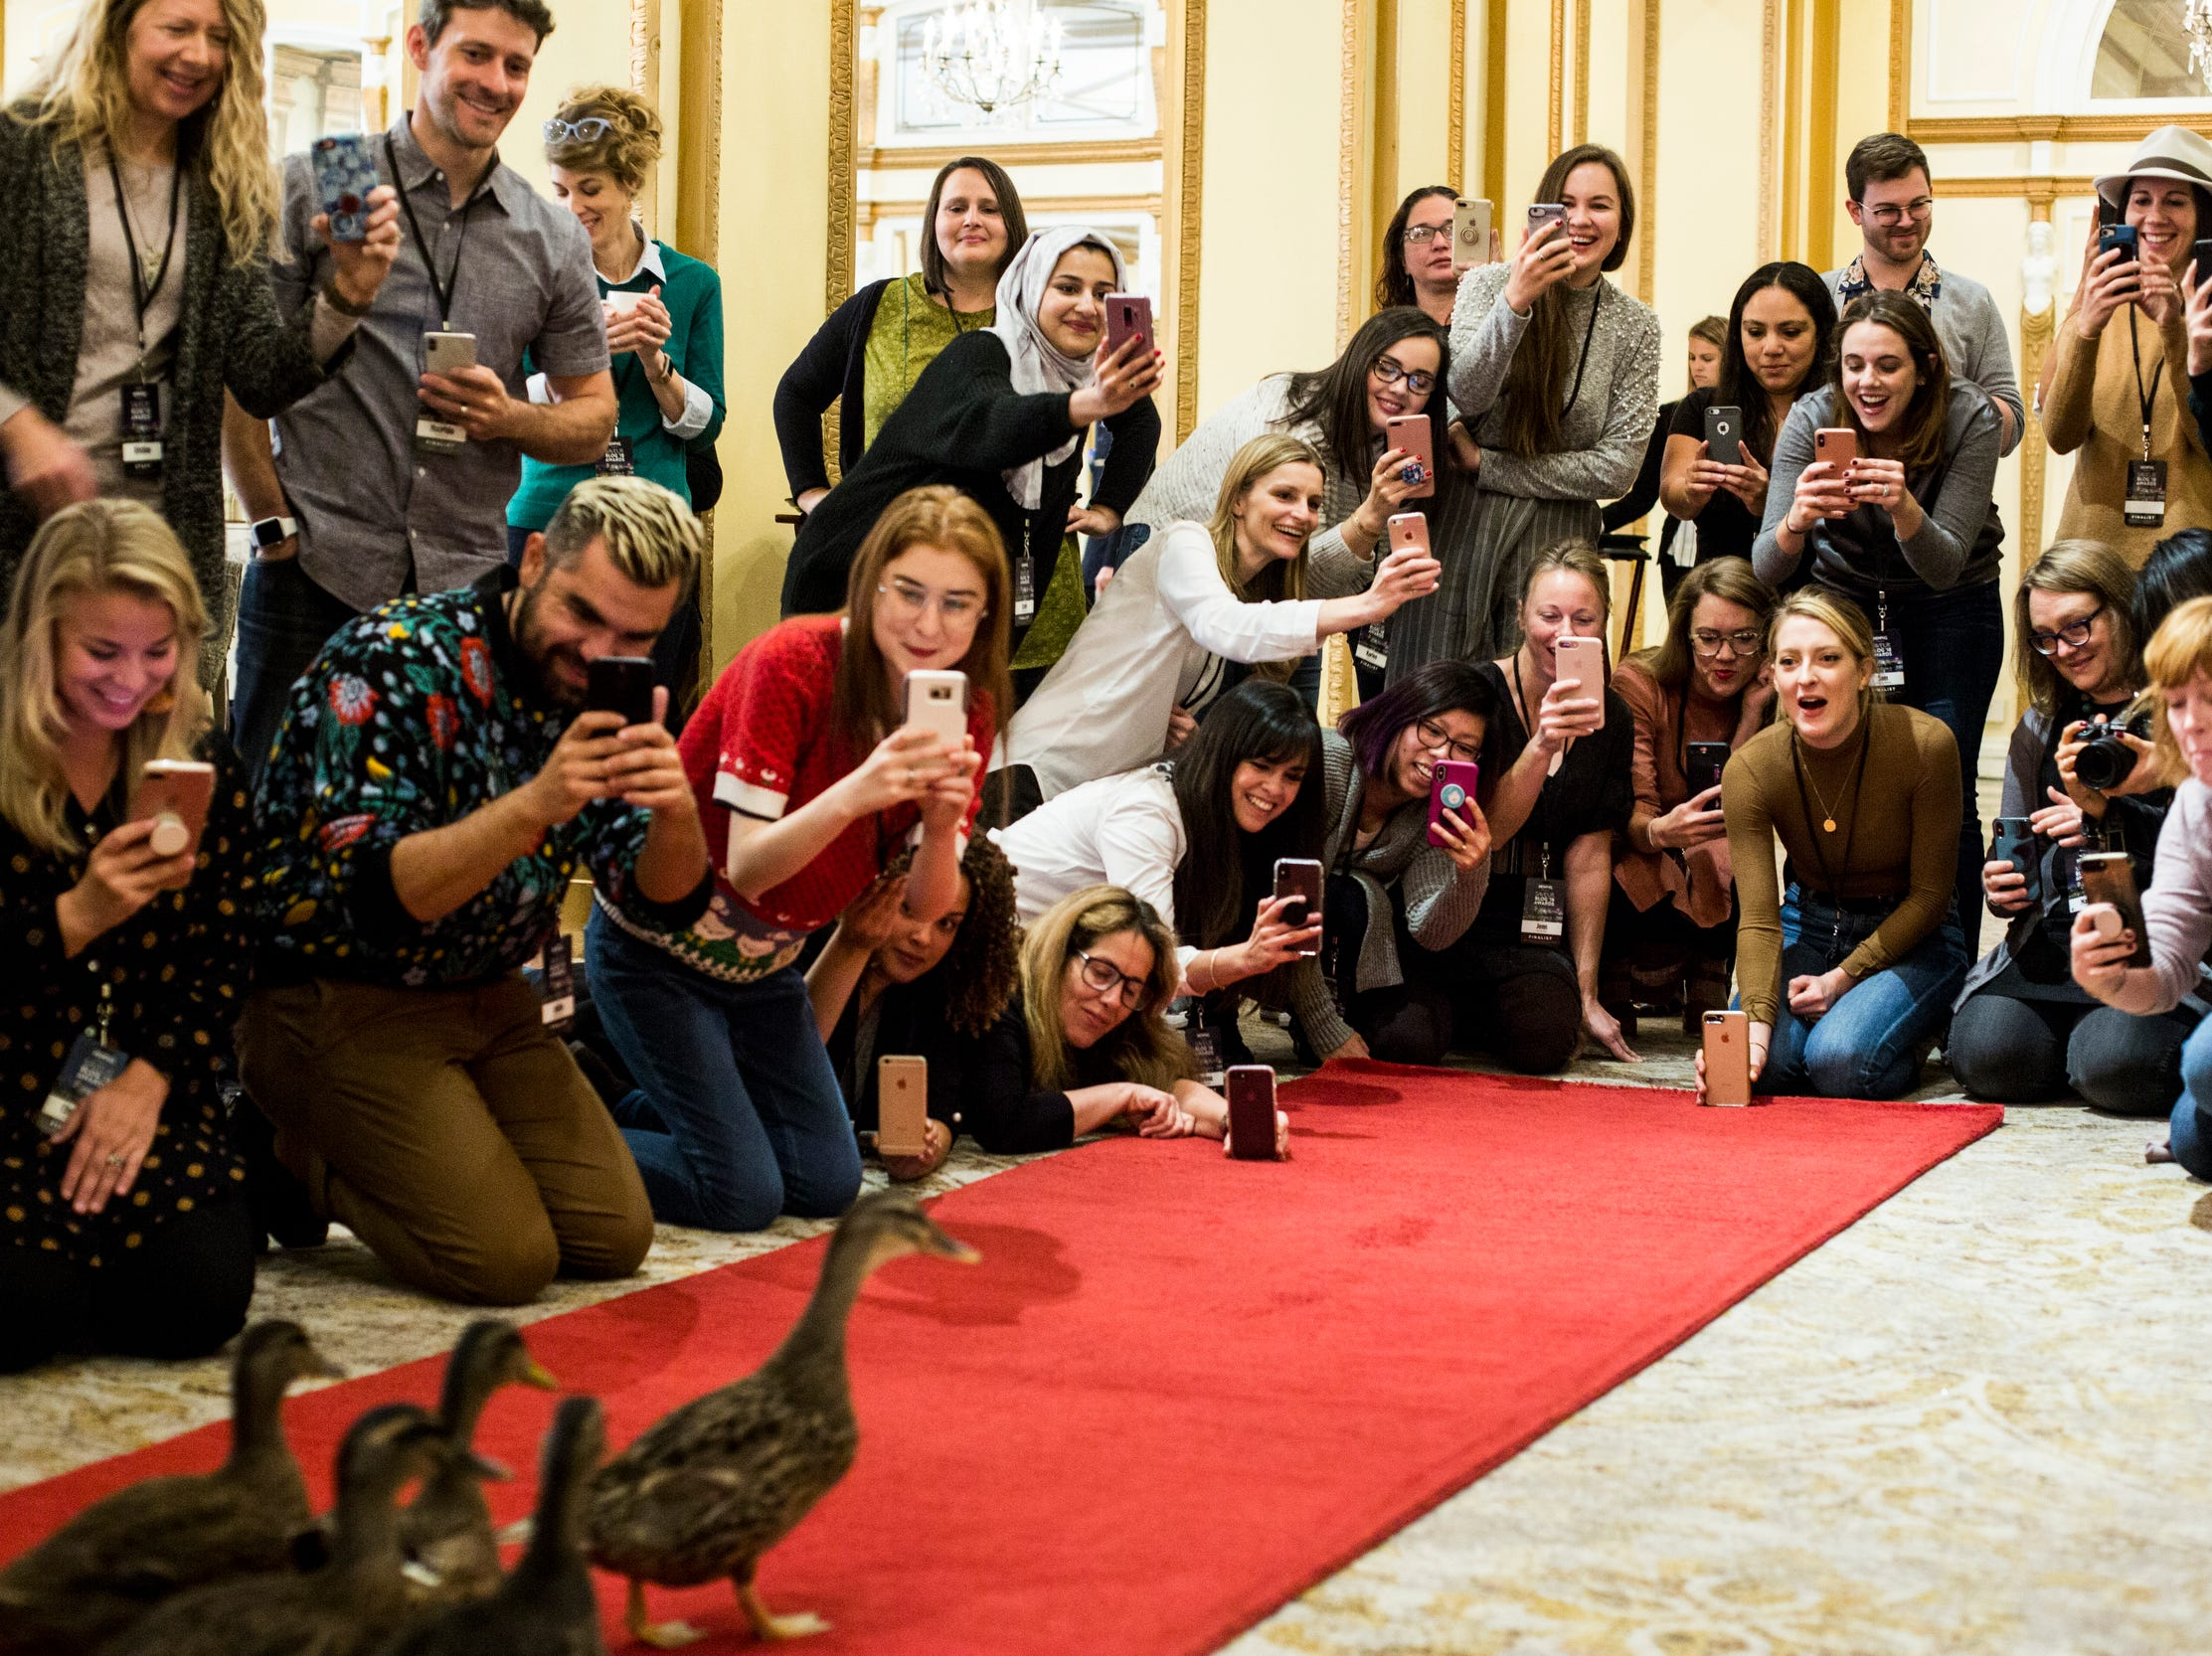 Saveur Blog Award finalists and guests gather around the red carpet during a private Peabody duck march Nov. 8, 2018, at the Peabody Hotel.